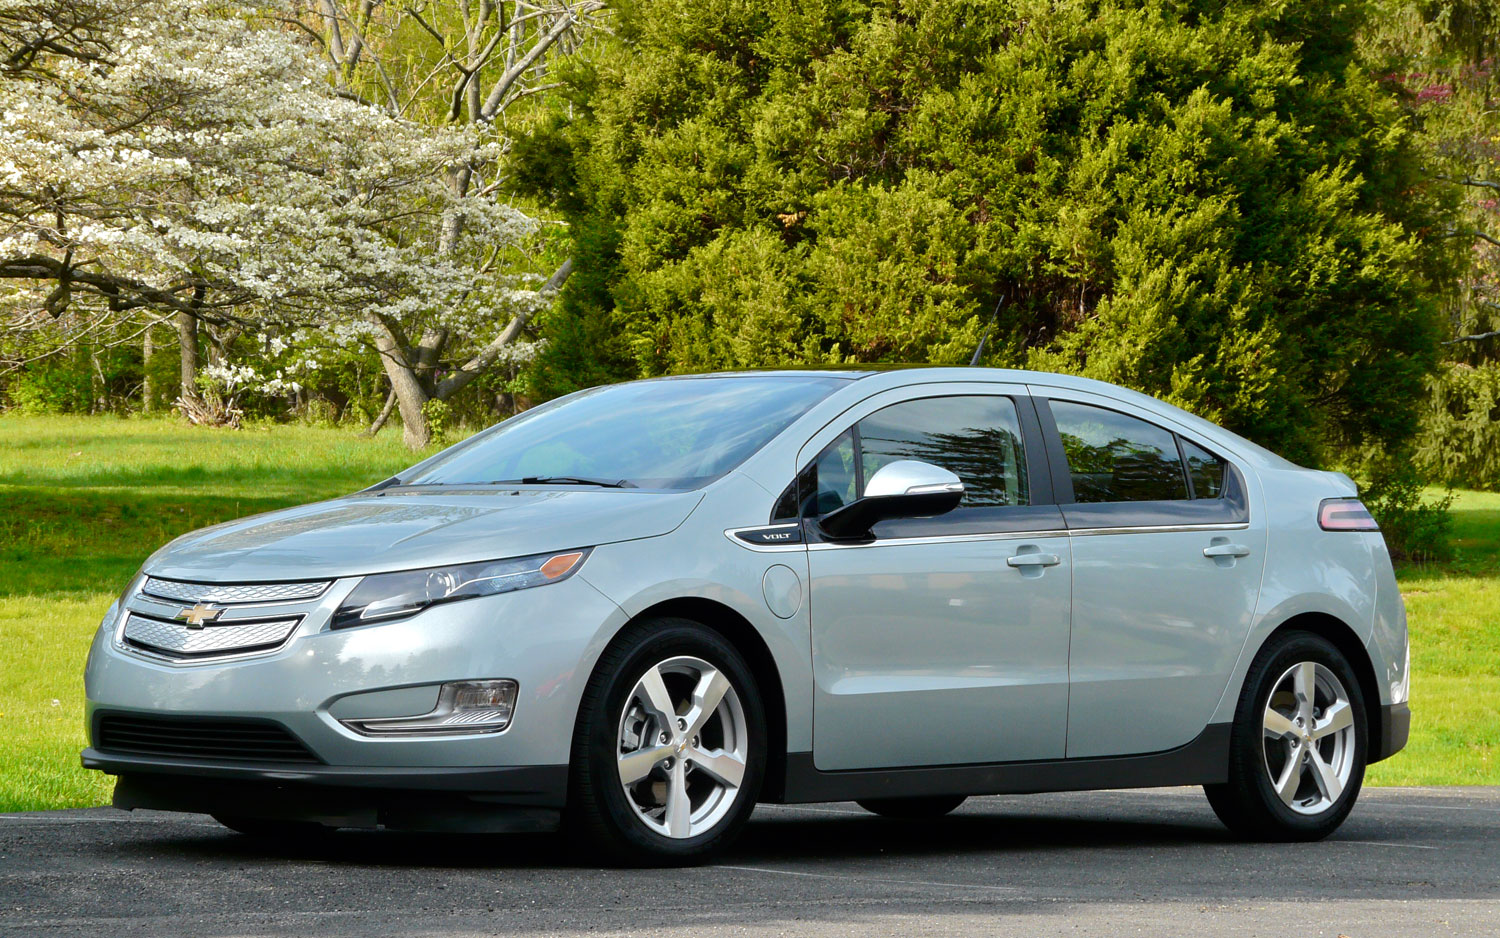 2011 Chevrolet Volt Front Left Side View2